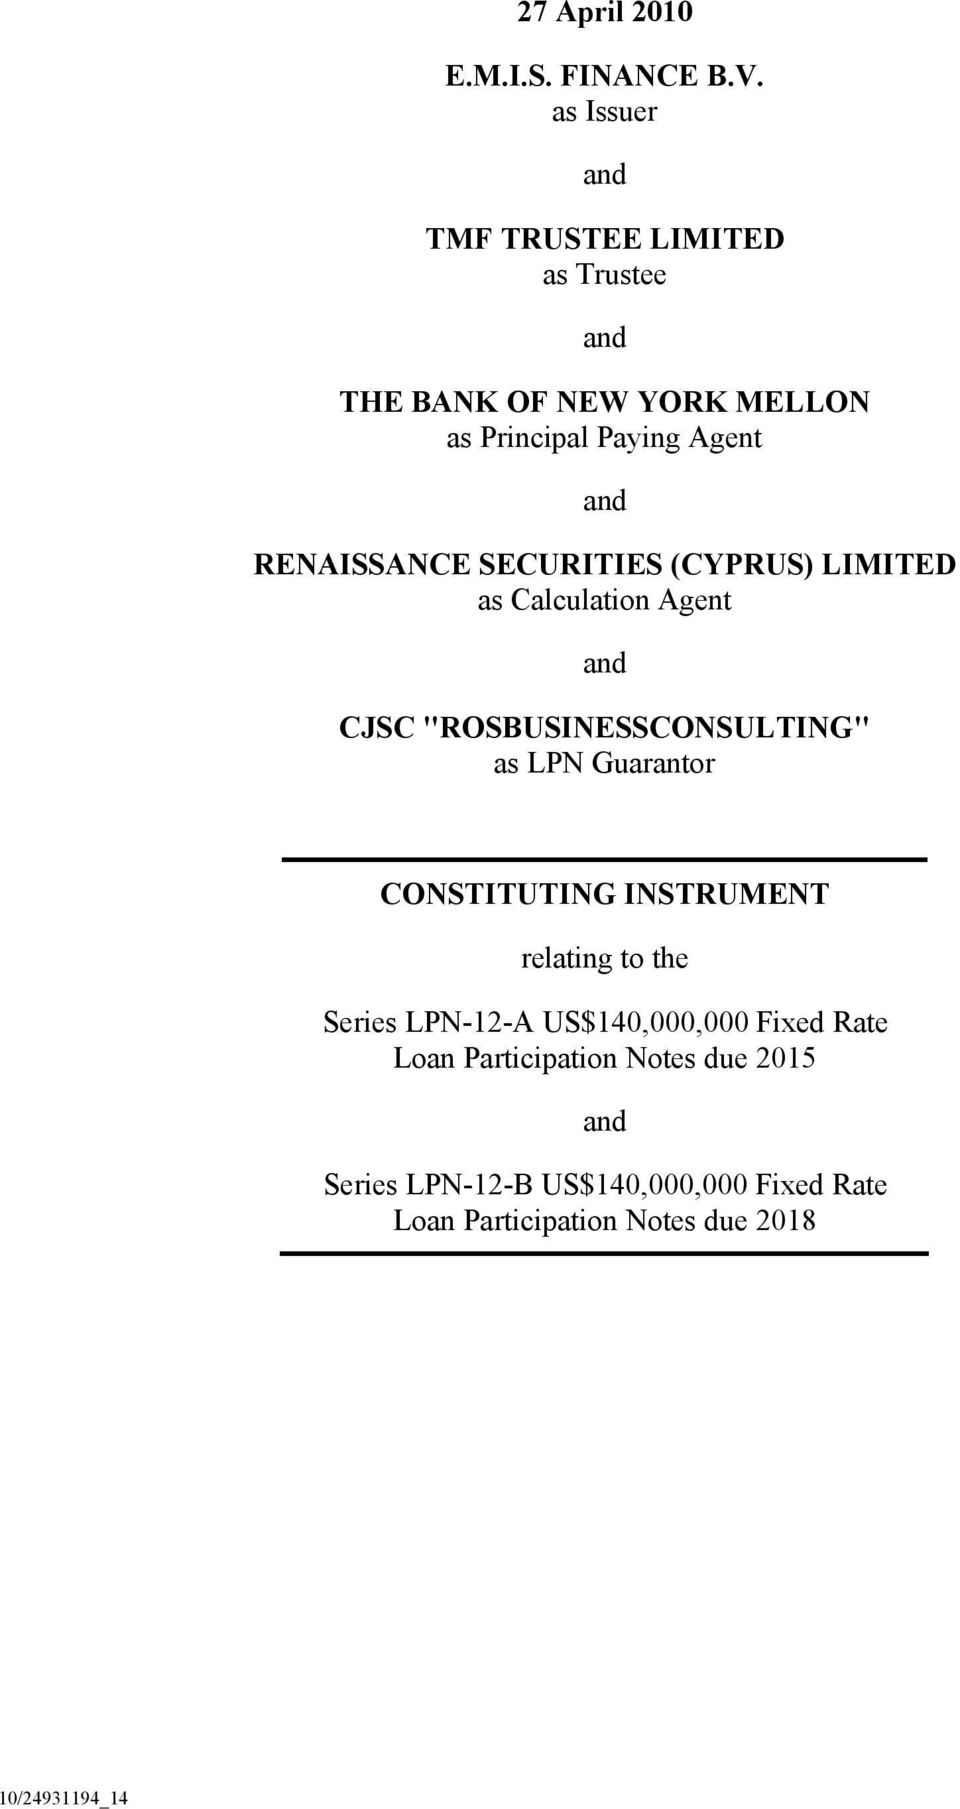 "RENAISSANCE SECURITIES (CYPRUS) LIMITED as Calculation Agent and CJSC ""ROSBUSINESSCONSULTING"" as LPN Guarantor"